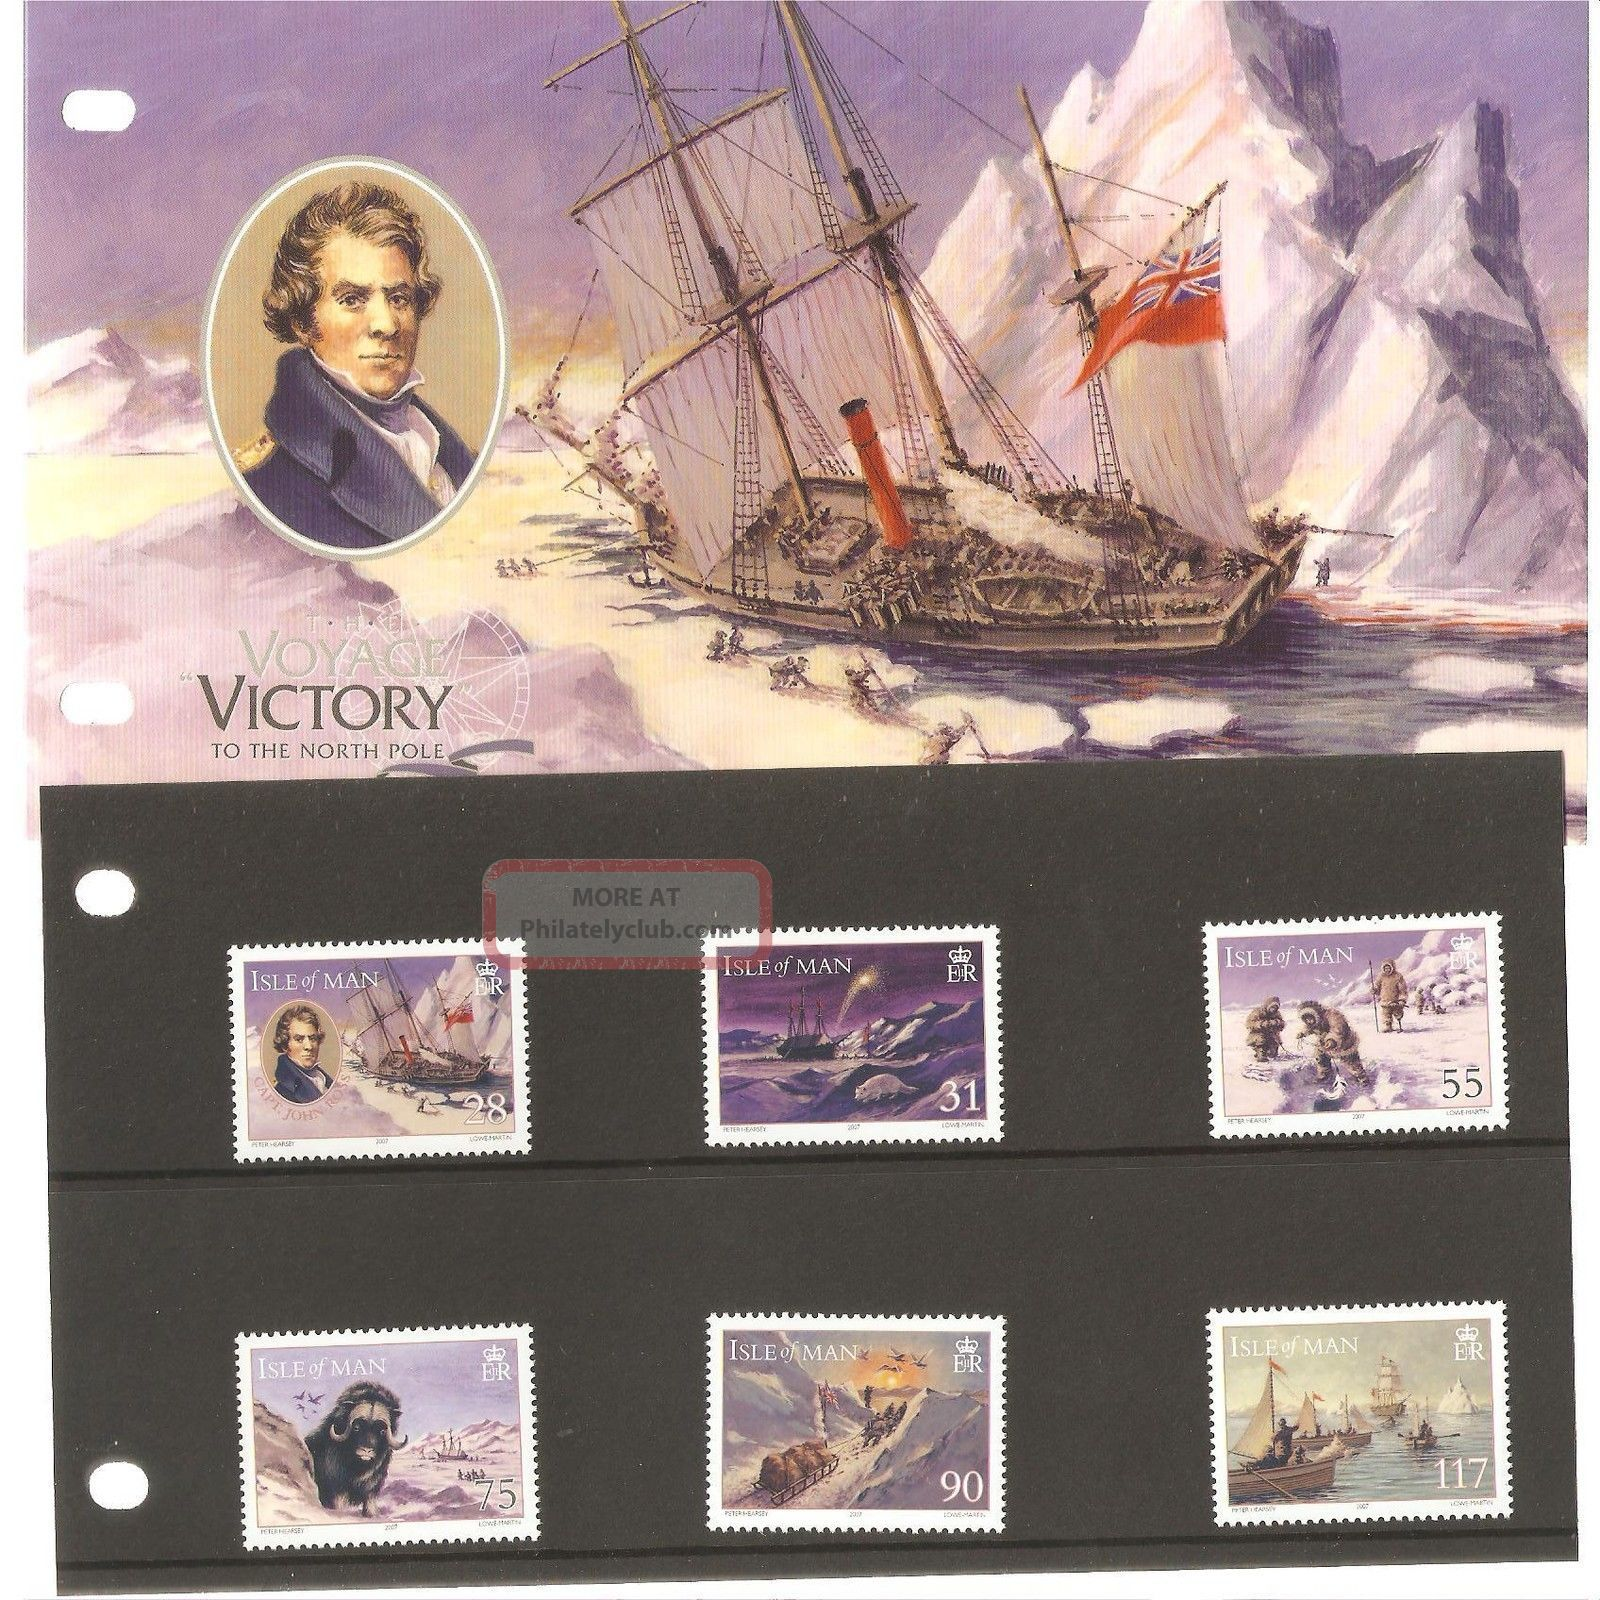 Isle Of Man Presentation Pack Voyage Of The Victory To The North Pole Regional Issues photo